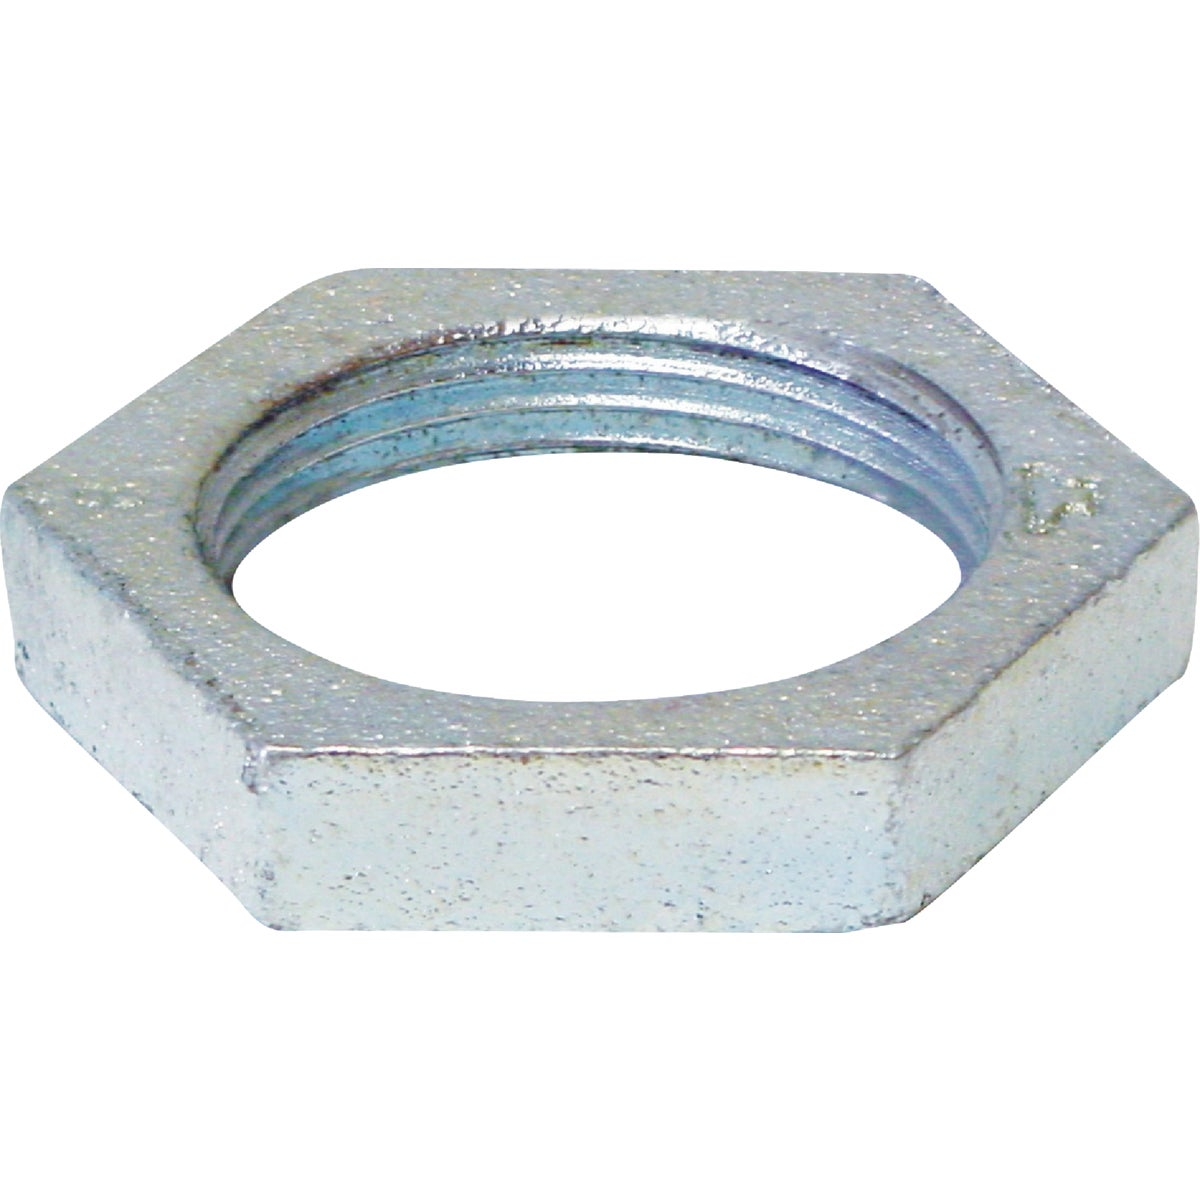 "1/4"" GALV LOCKNUT - 8700162400 by Anvil International"